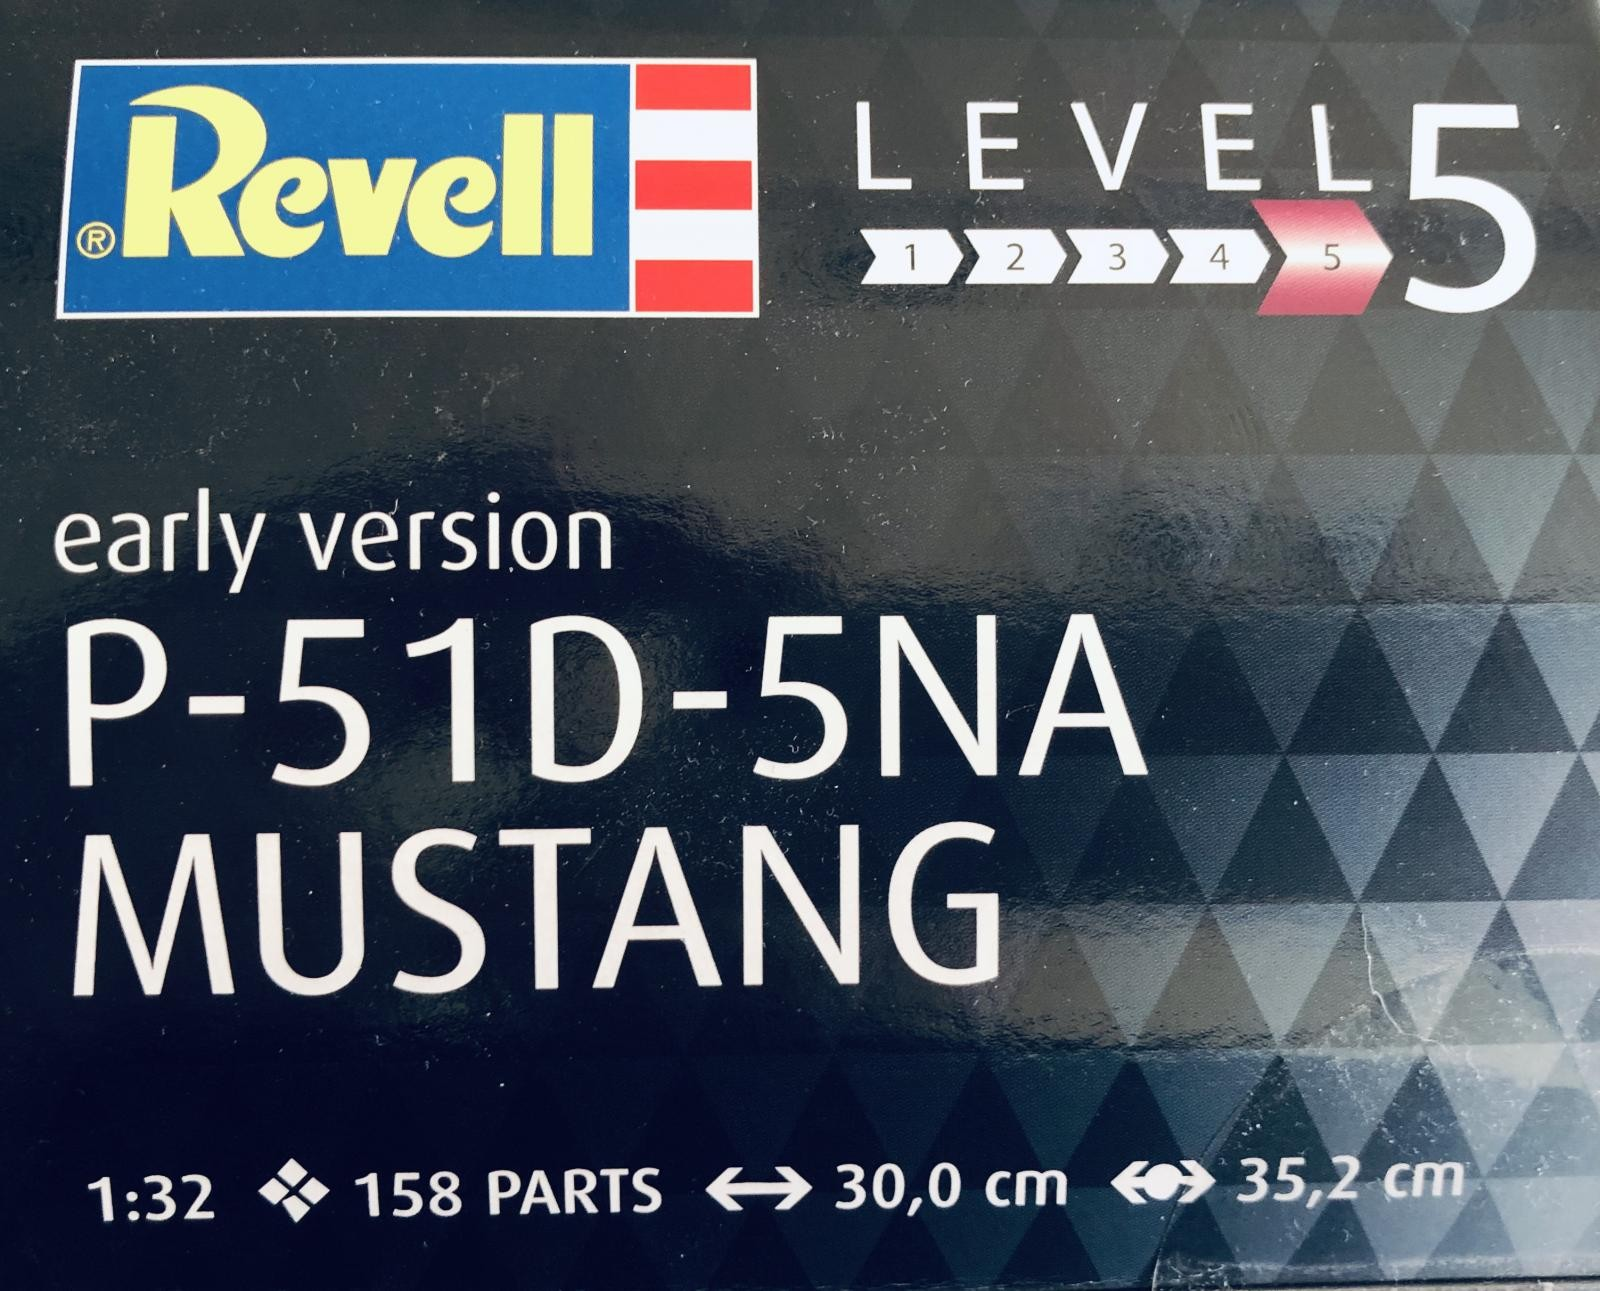 Kit Review: 1/32 scale P-51D-5NA Mustang, Revell of Germany, kit